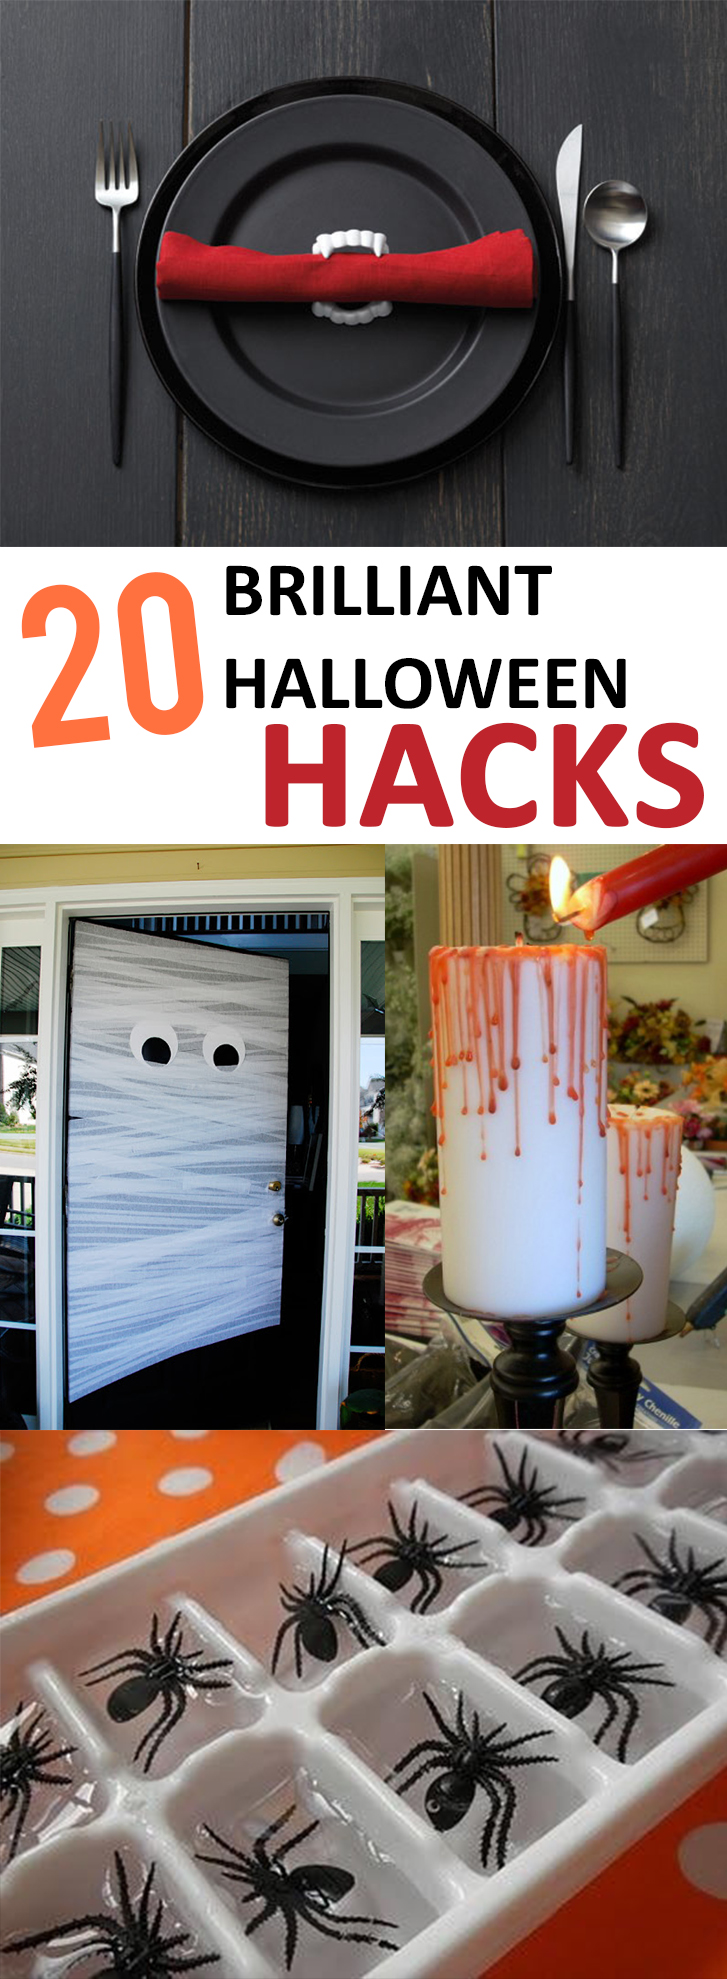 You Dont Have To Create All These Decorations Alone Let The Kiddos Get In On The Fun You Can Do These As A Before The Party Crafts Or During The Party